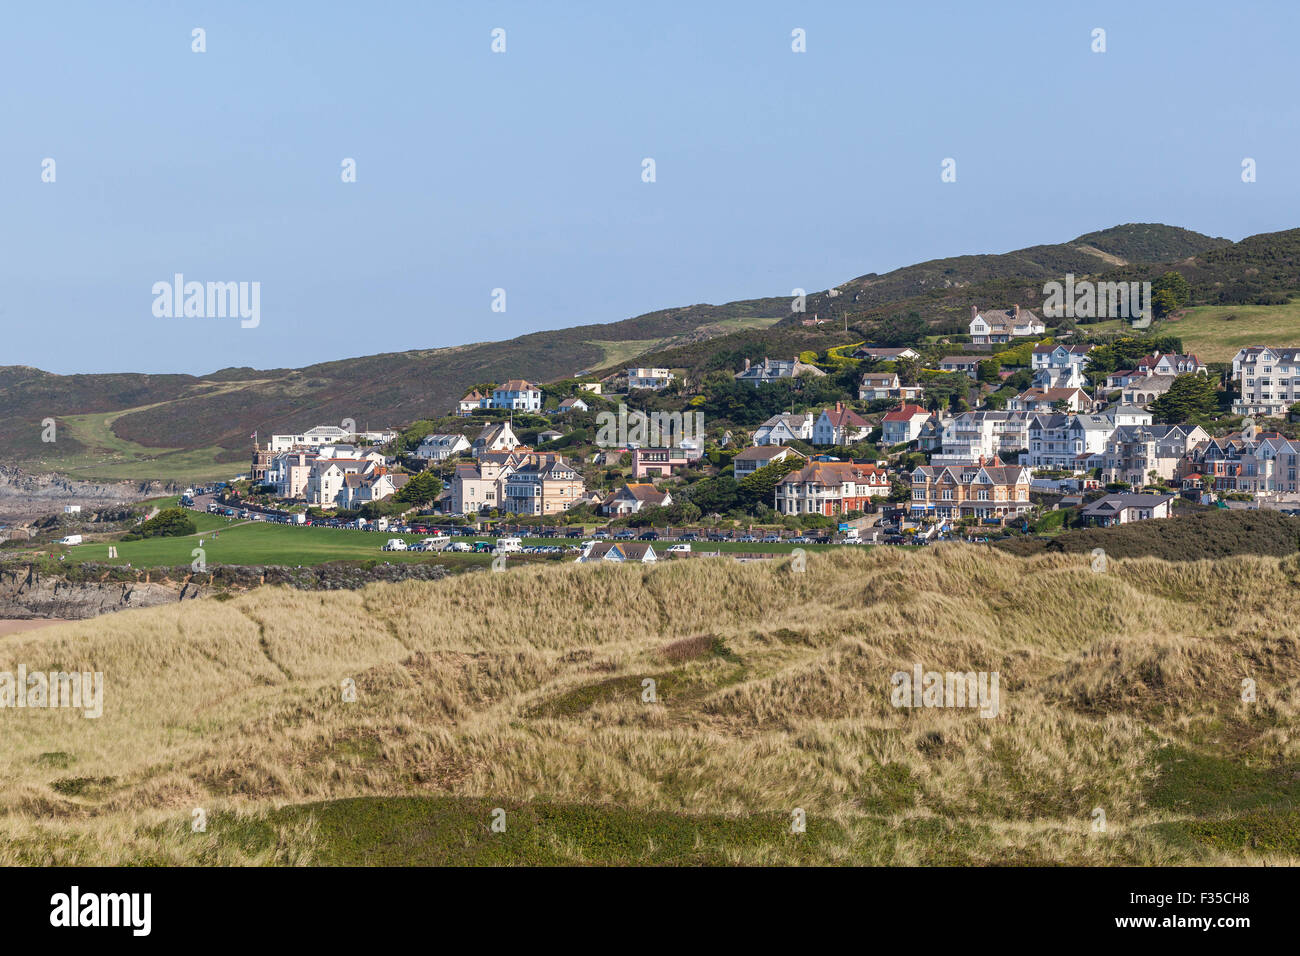 The village of Morthoe, North Devon, West Country, England, UK - Stock Image